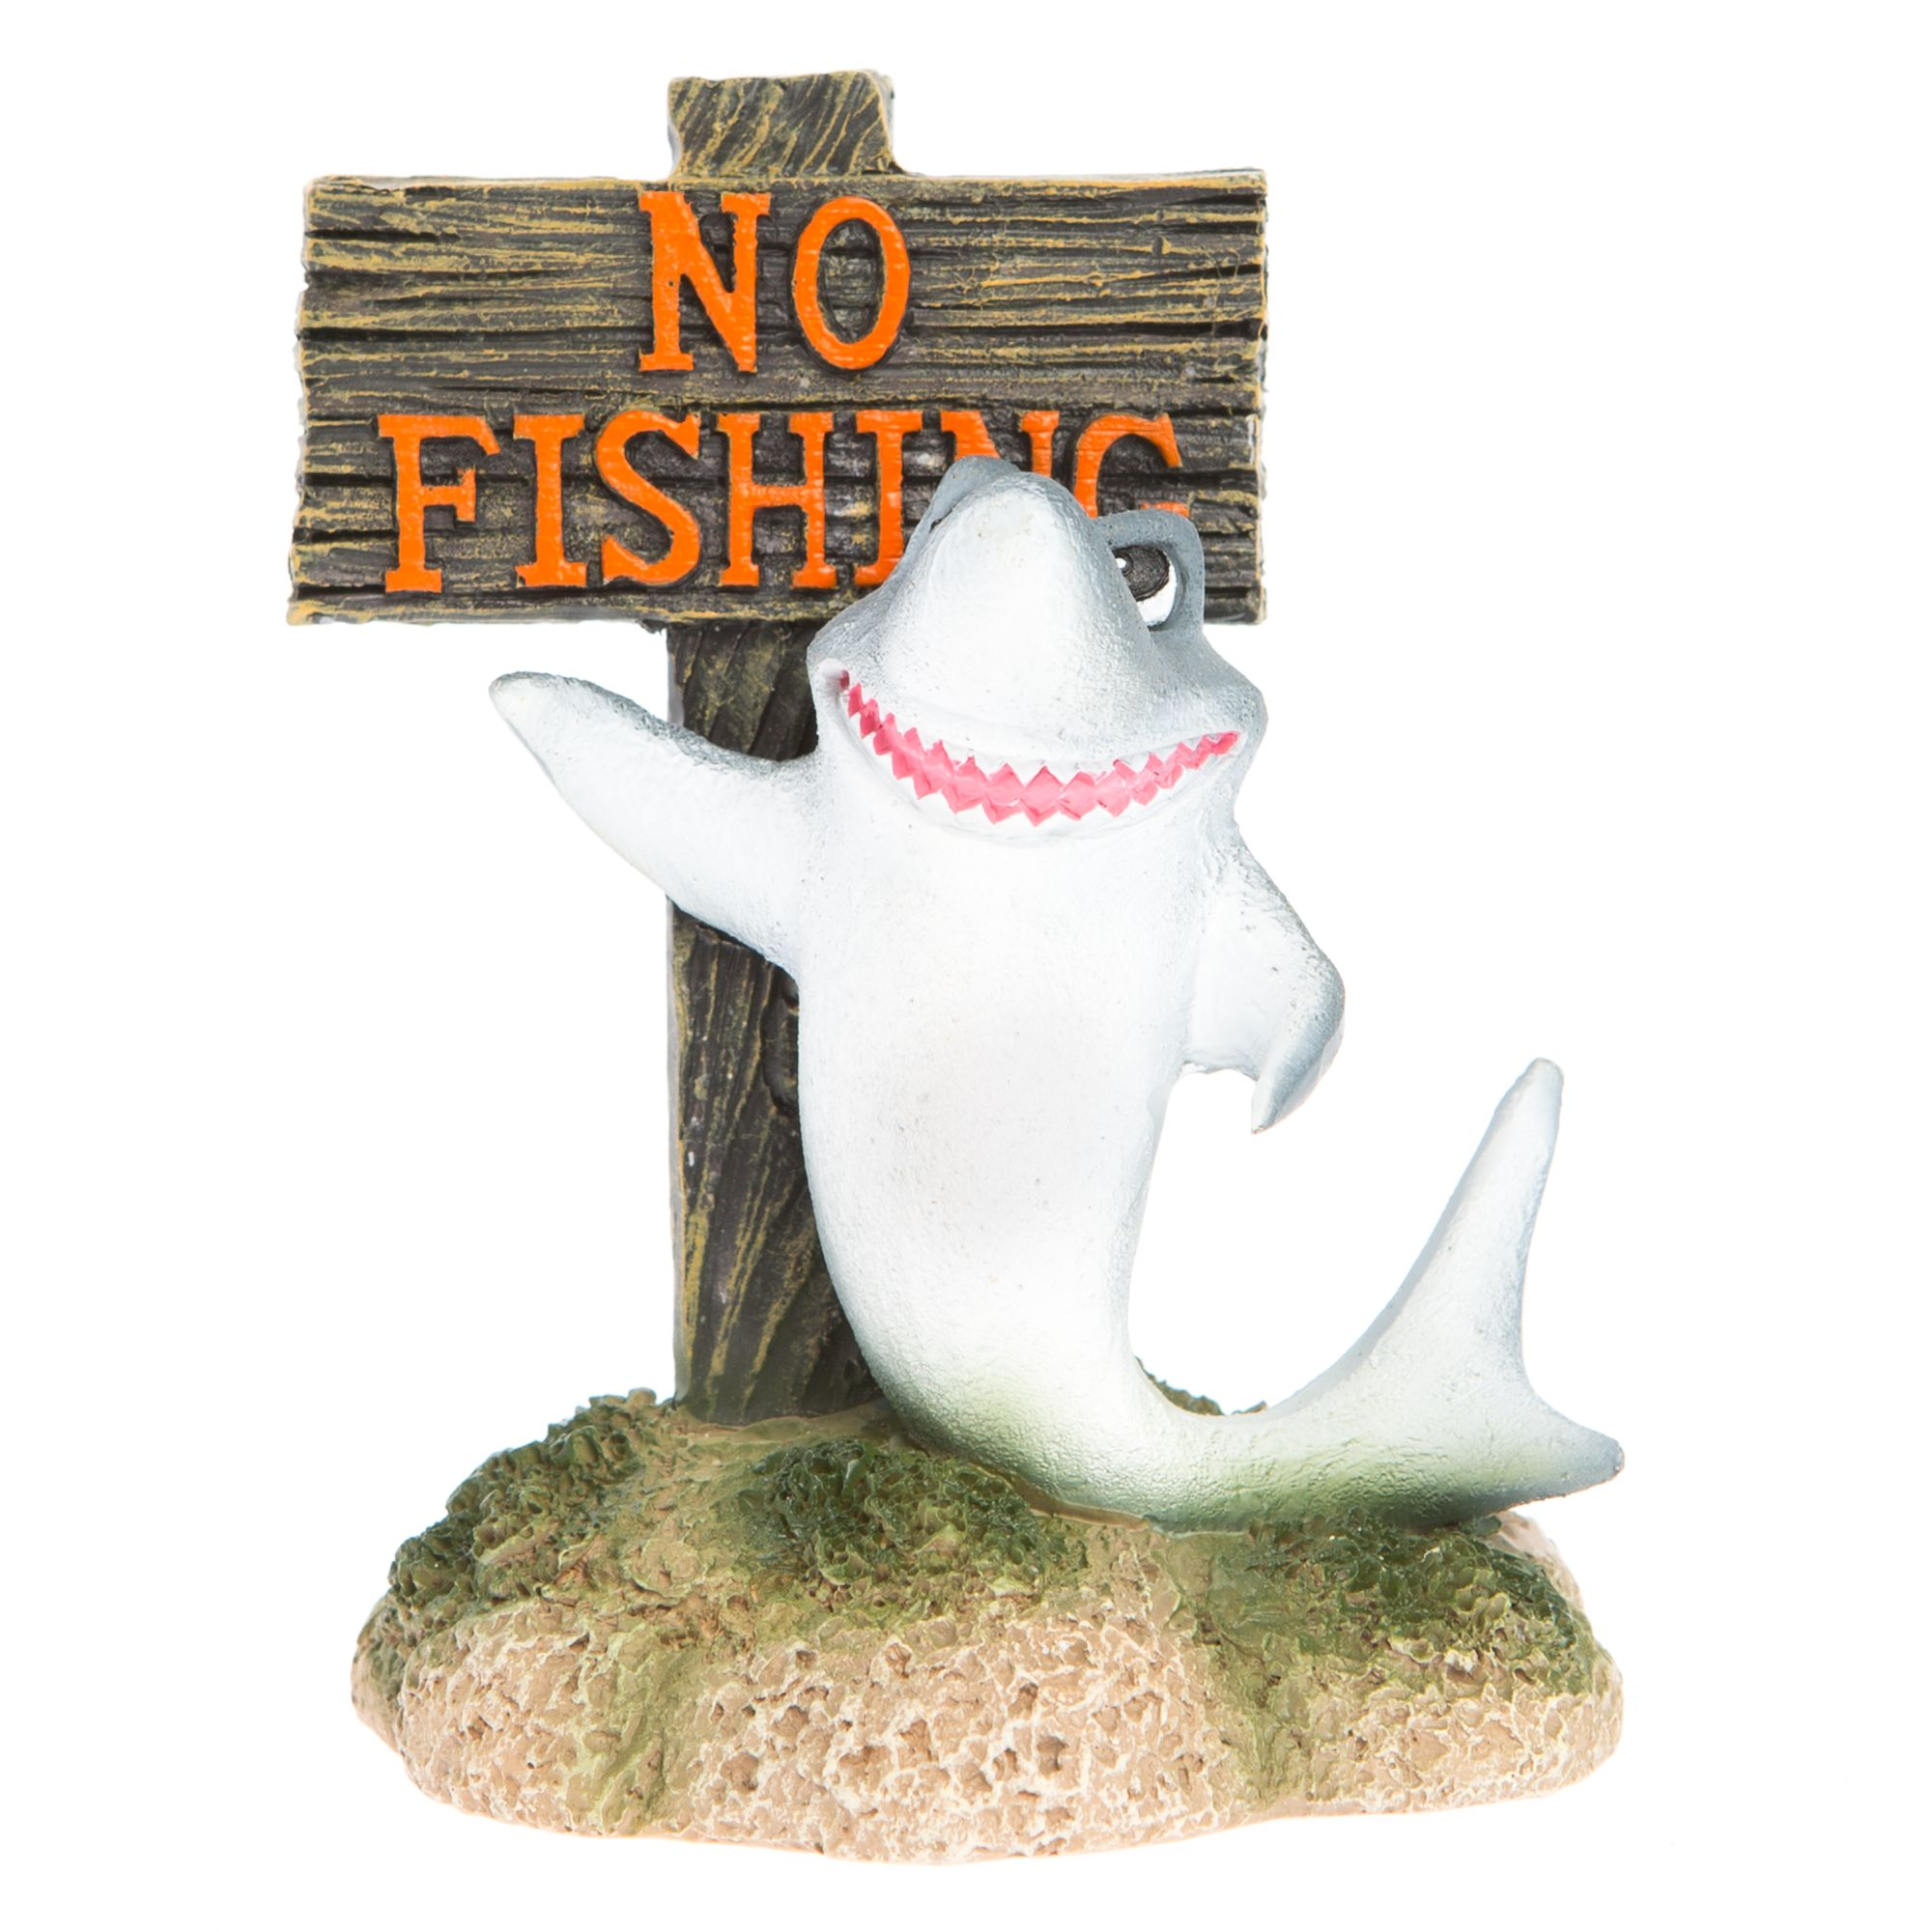 Top Fin No Fishing With Shark Aquarium Ornament Multi Color